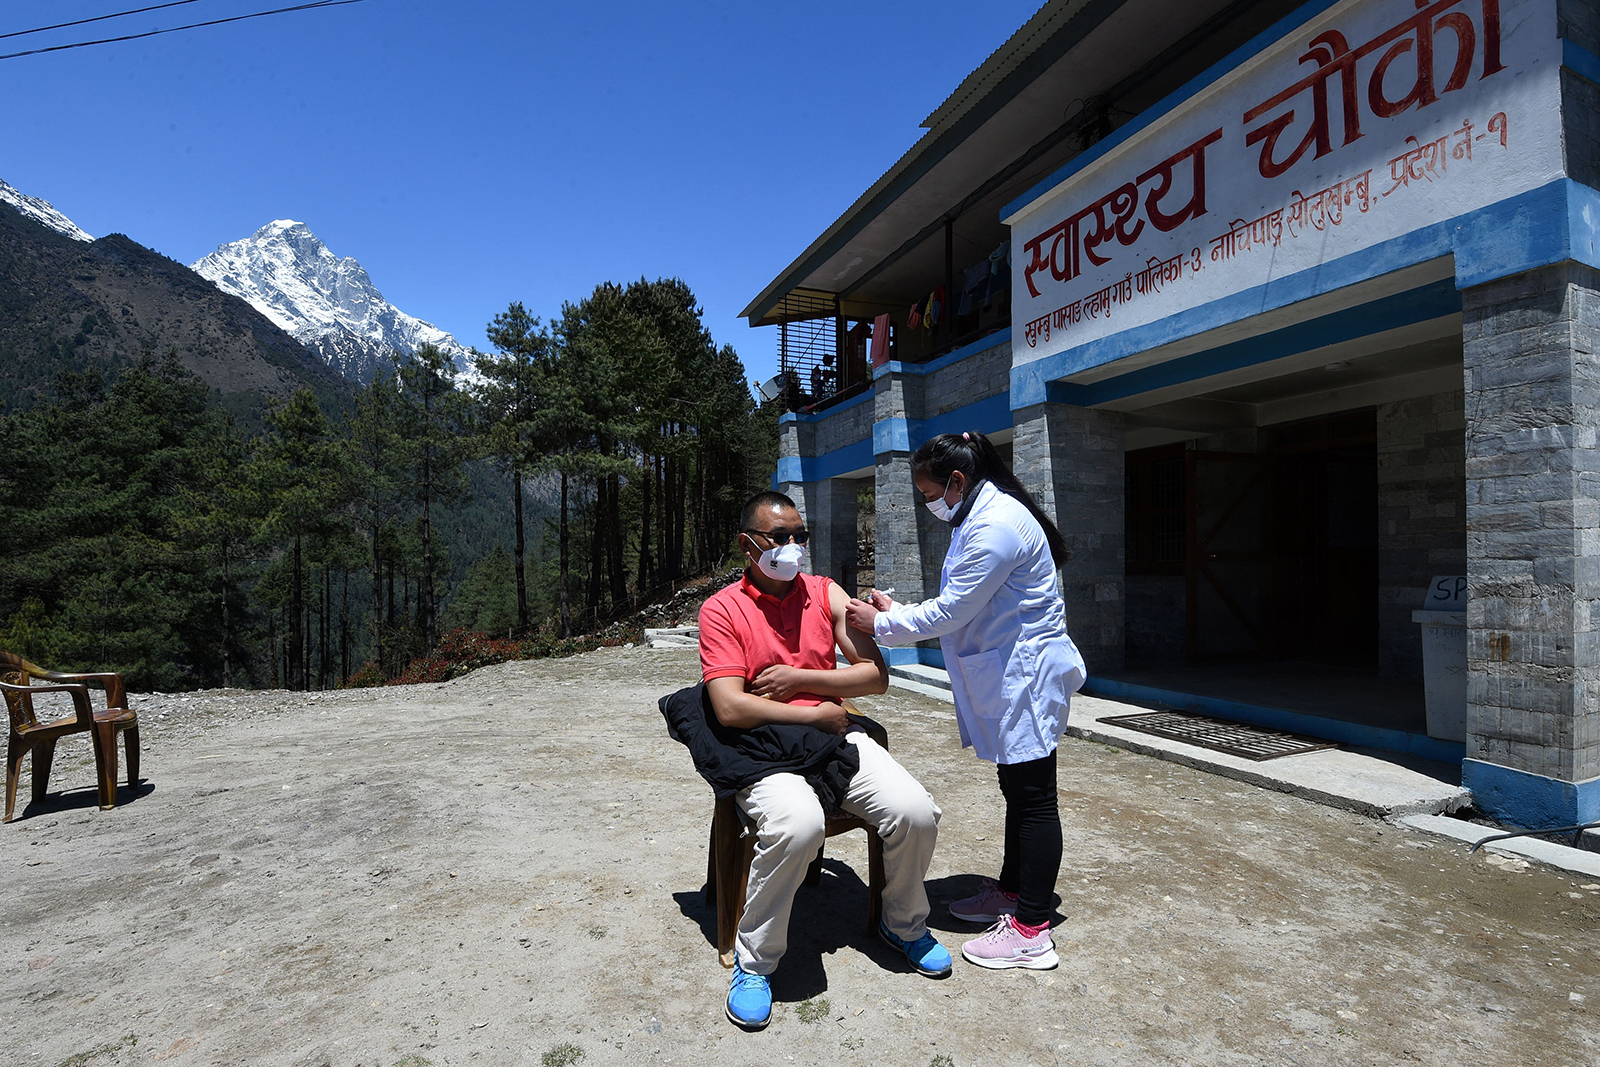 A health worker inoculates a man with the Covishield vaccine at a health post near Lukla on April 23 in Nepal.